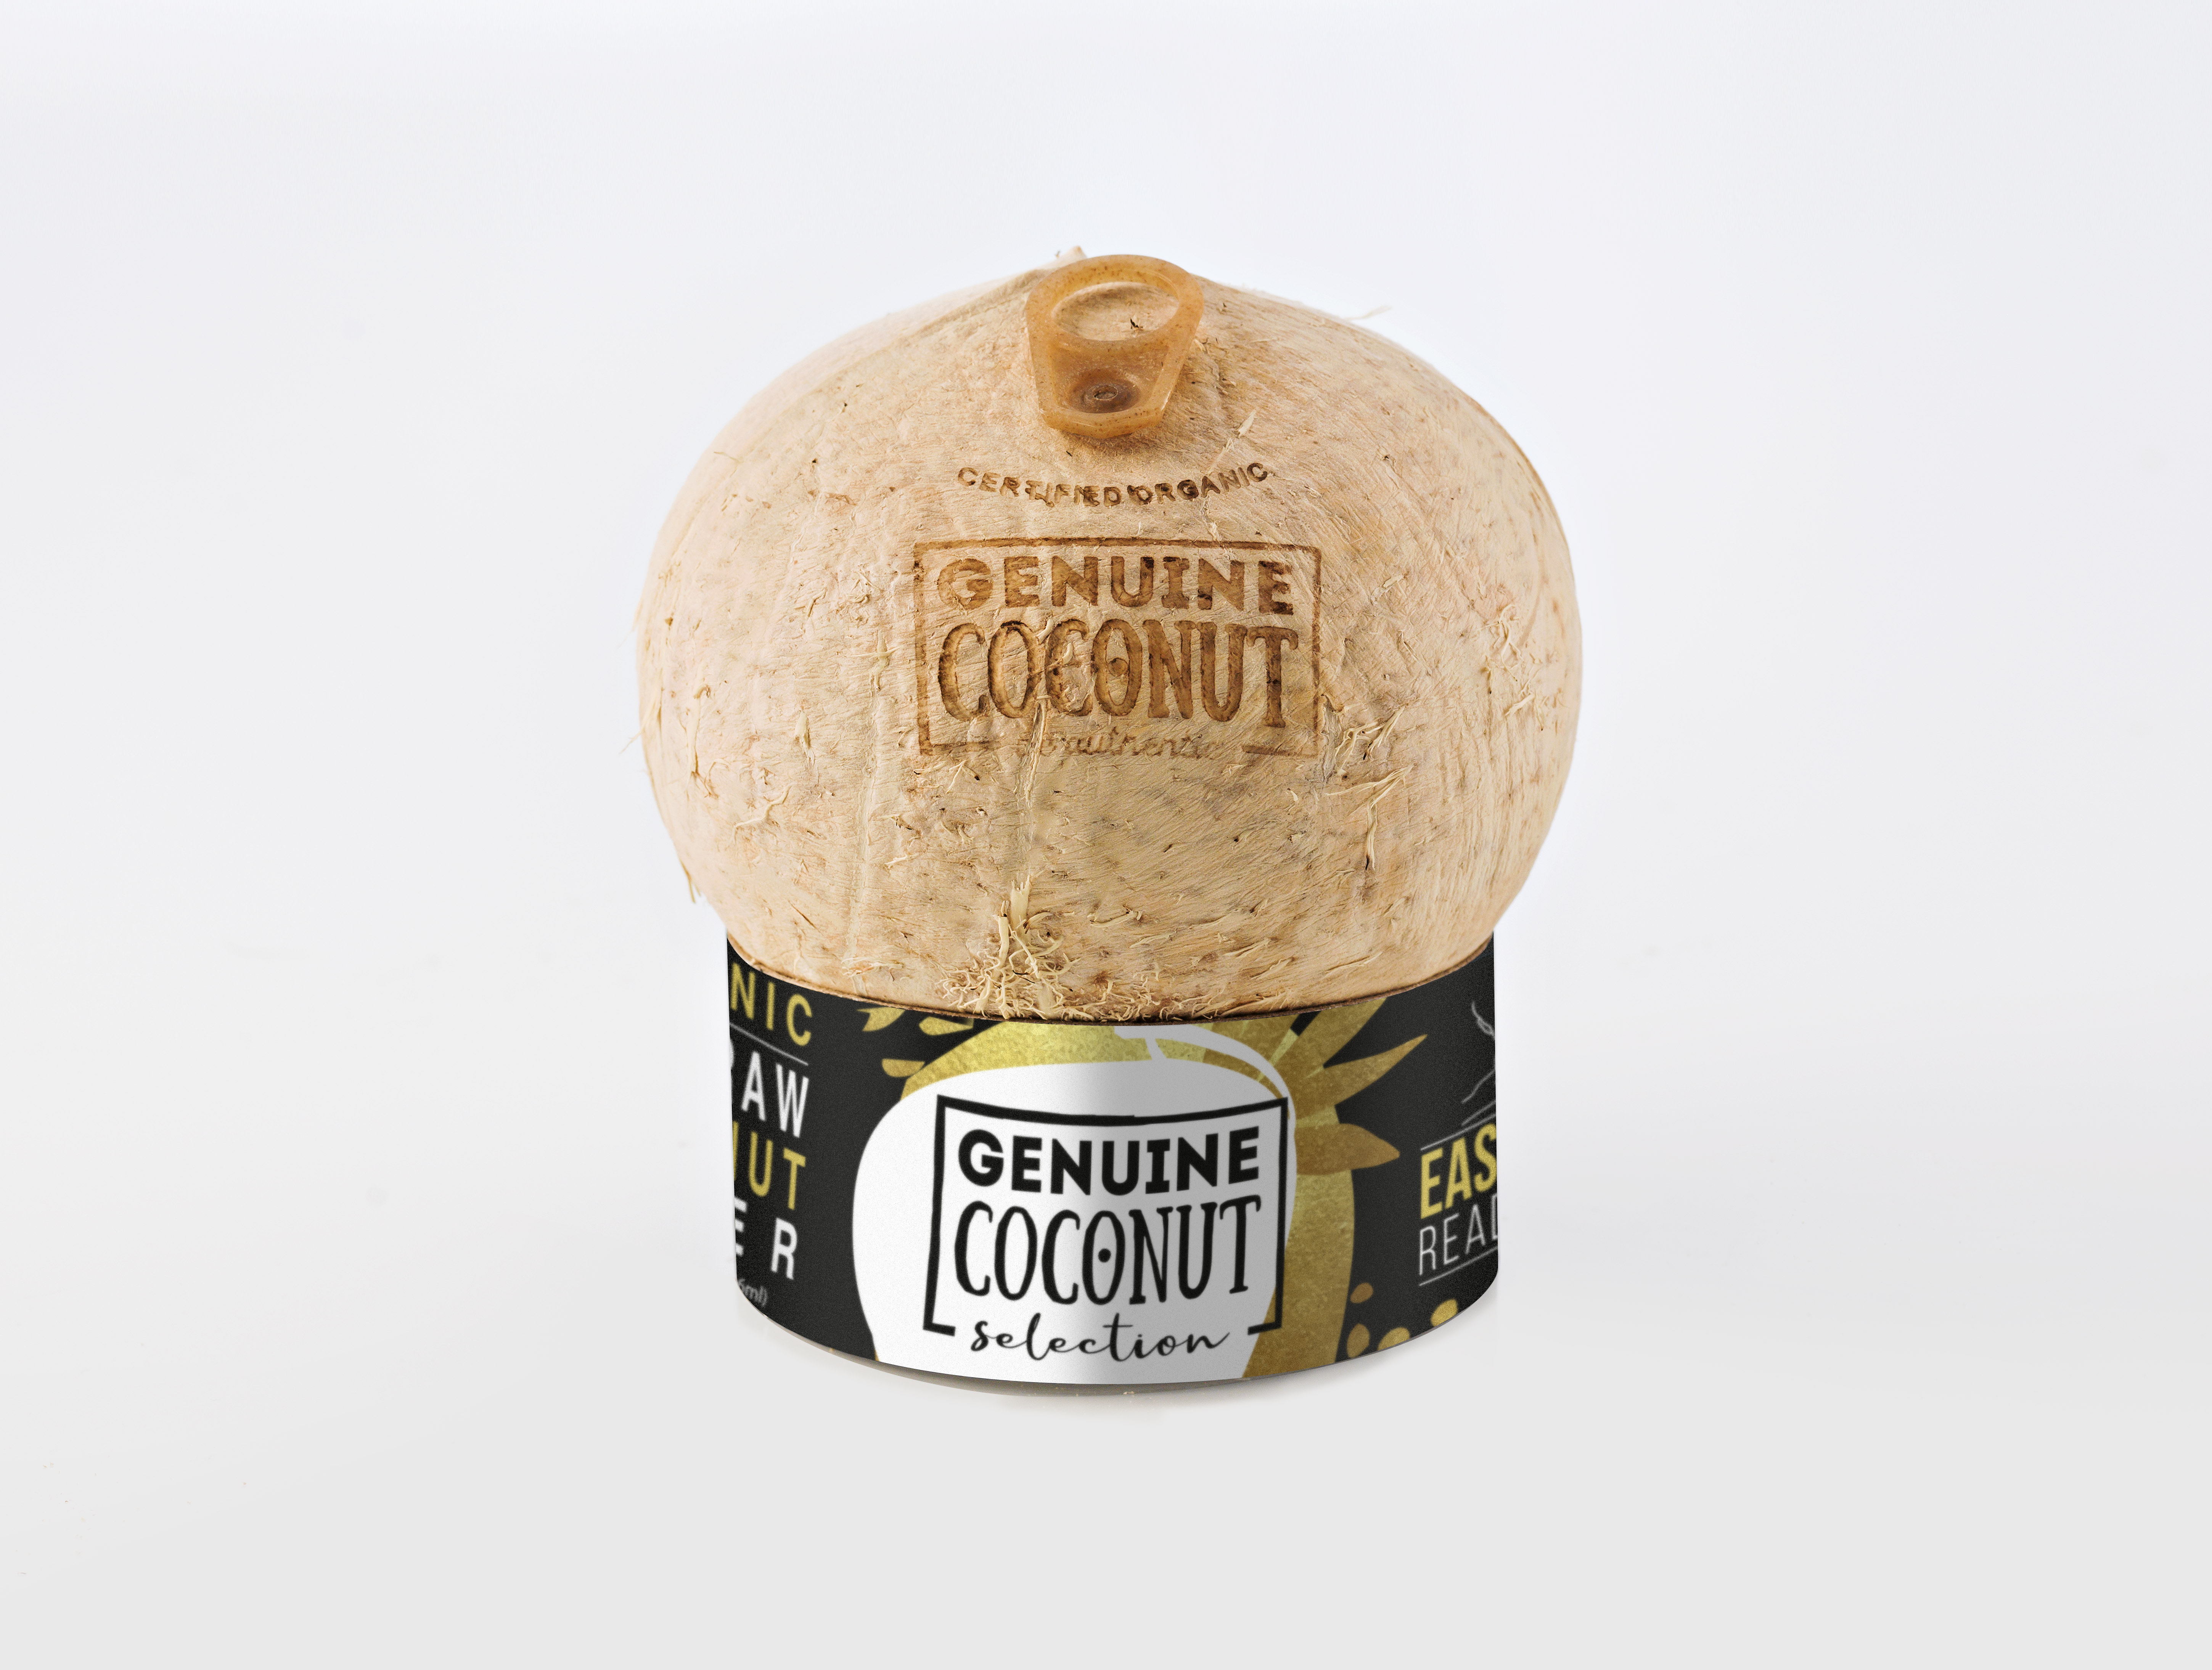 Photo of Raw Organic Coconut Water - Genuine Coconut (uploaded by company)